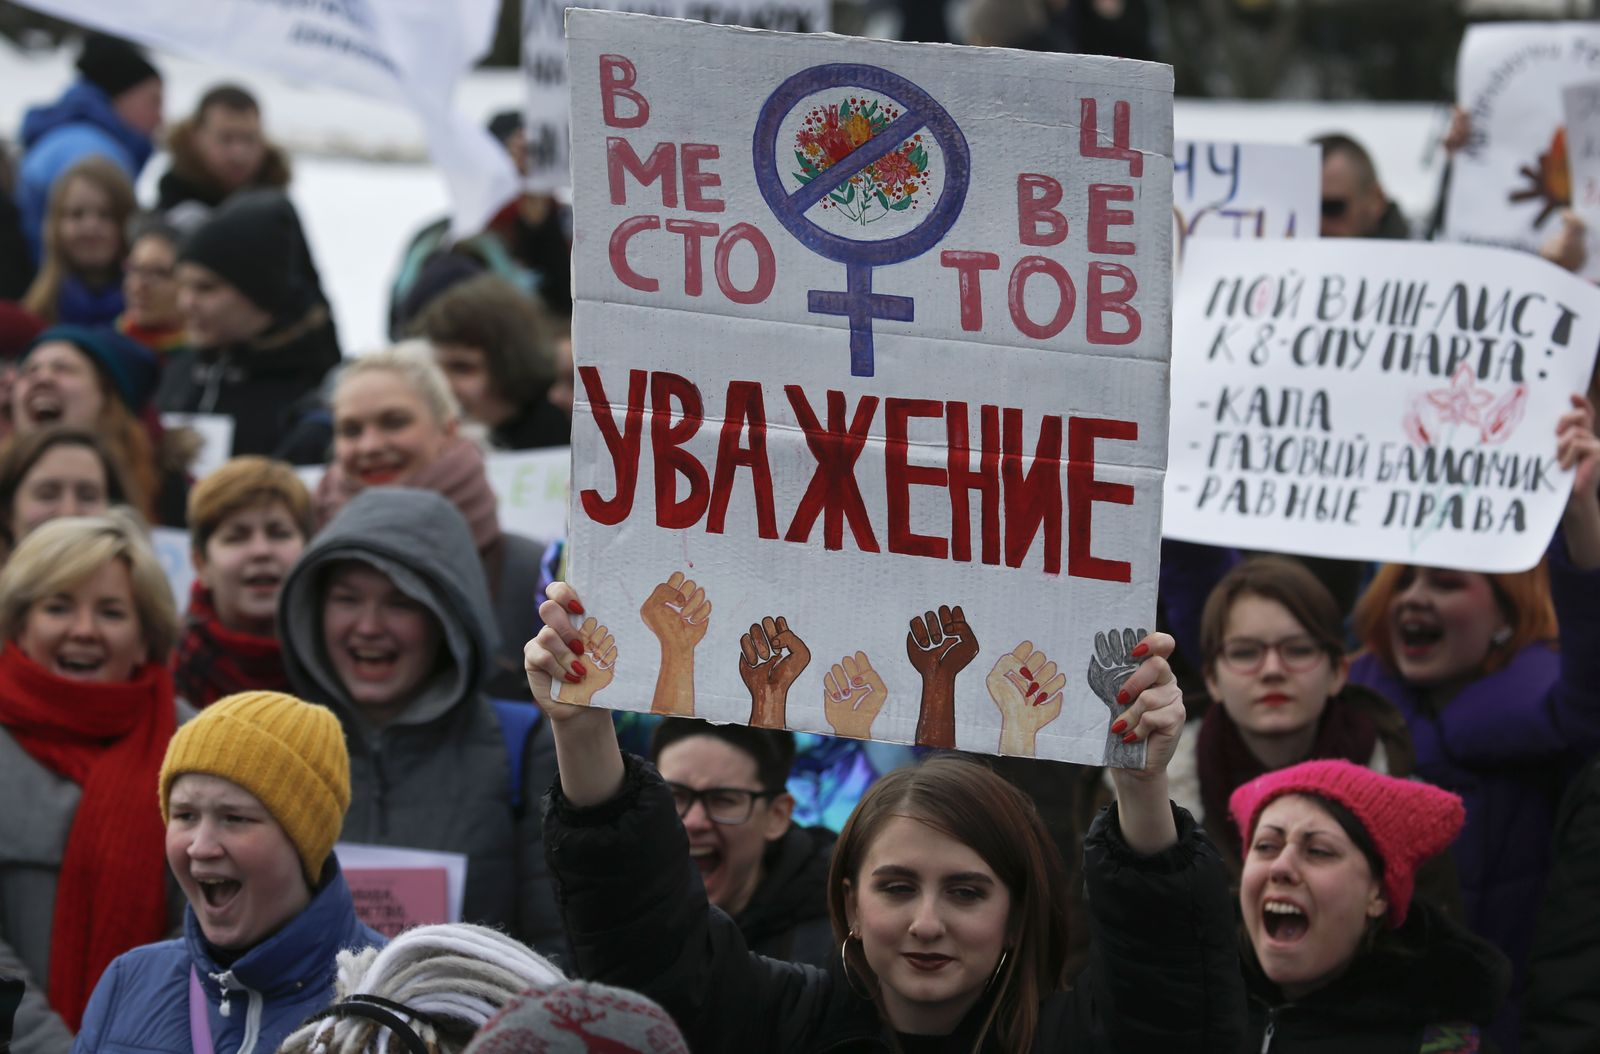 People attend a rally in support of women's rights in Saint Petersburg